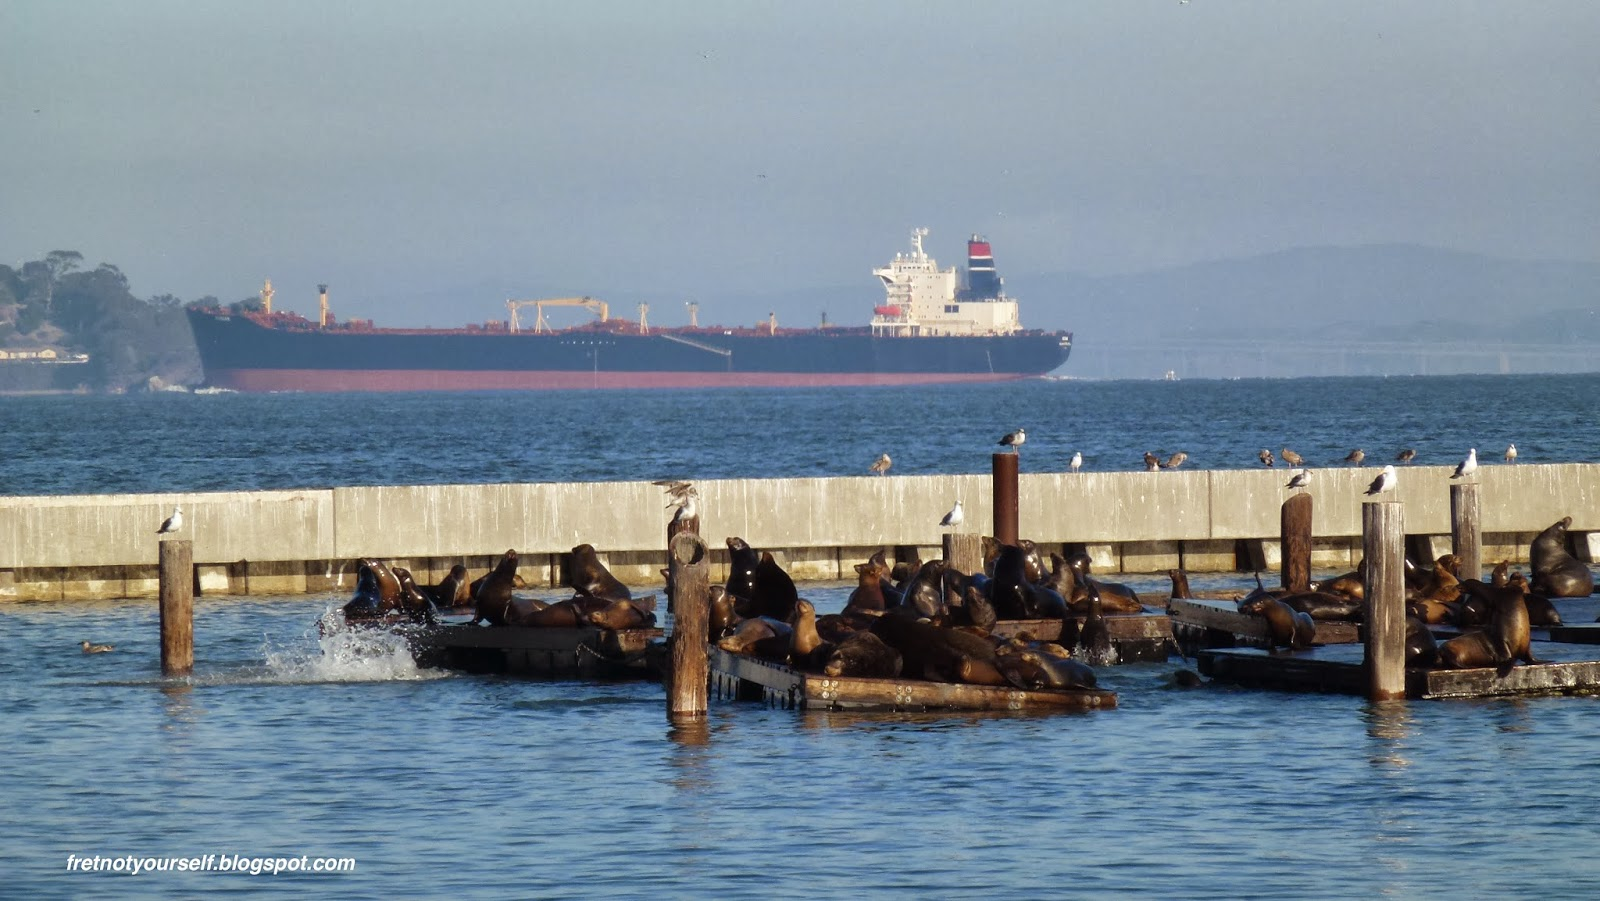 Dark brown harbor seals rest on wooden pontoons while white and grey seagulls perch on the pilings as a large black and red cargo ship sails into San Francisco Bay